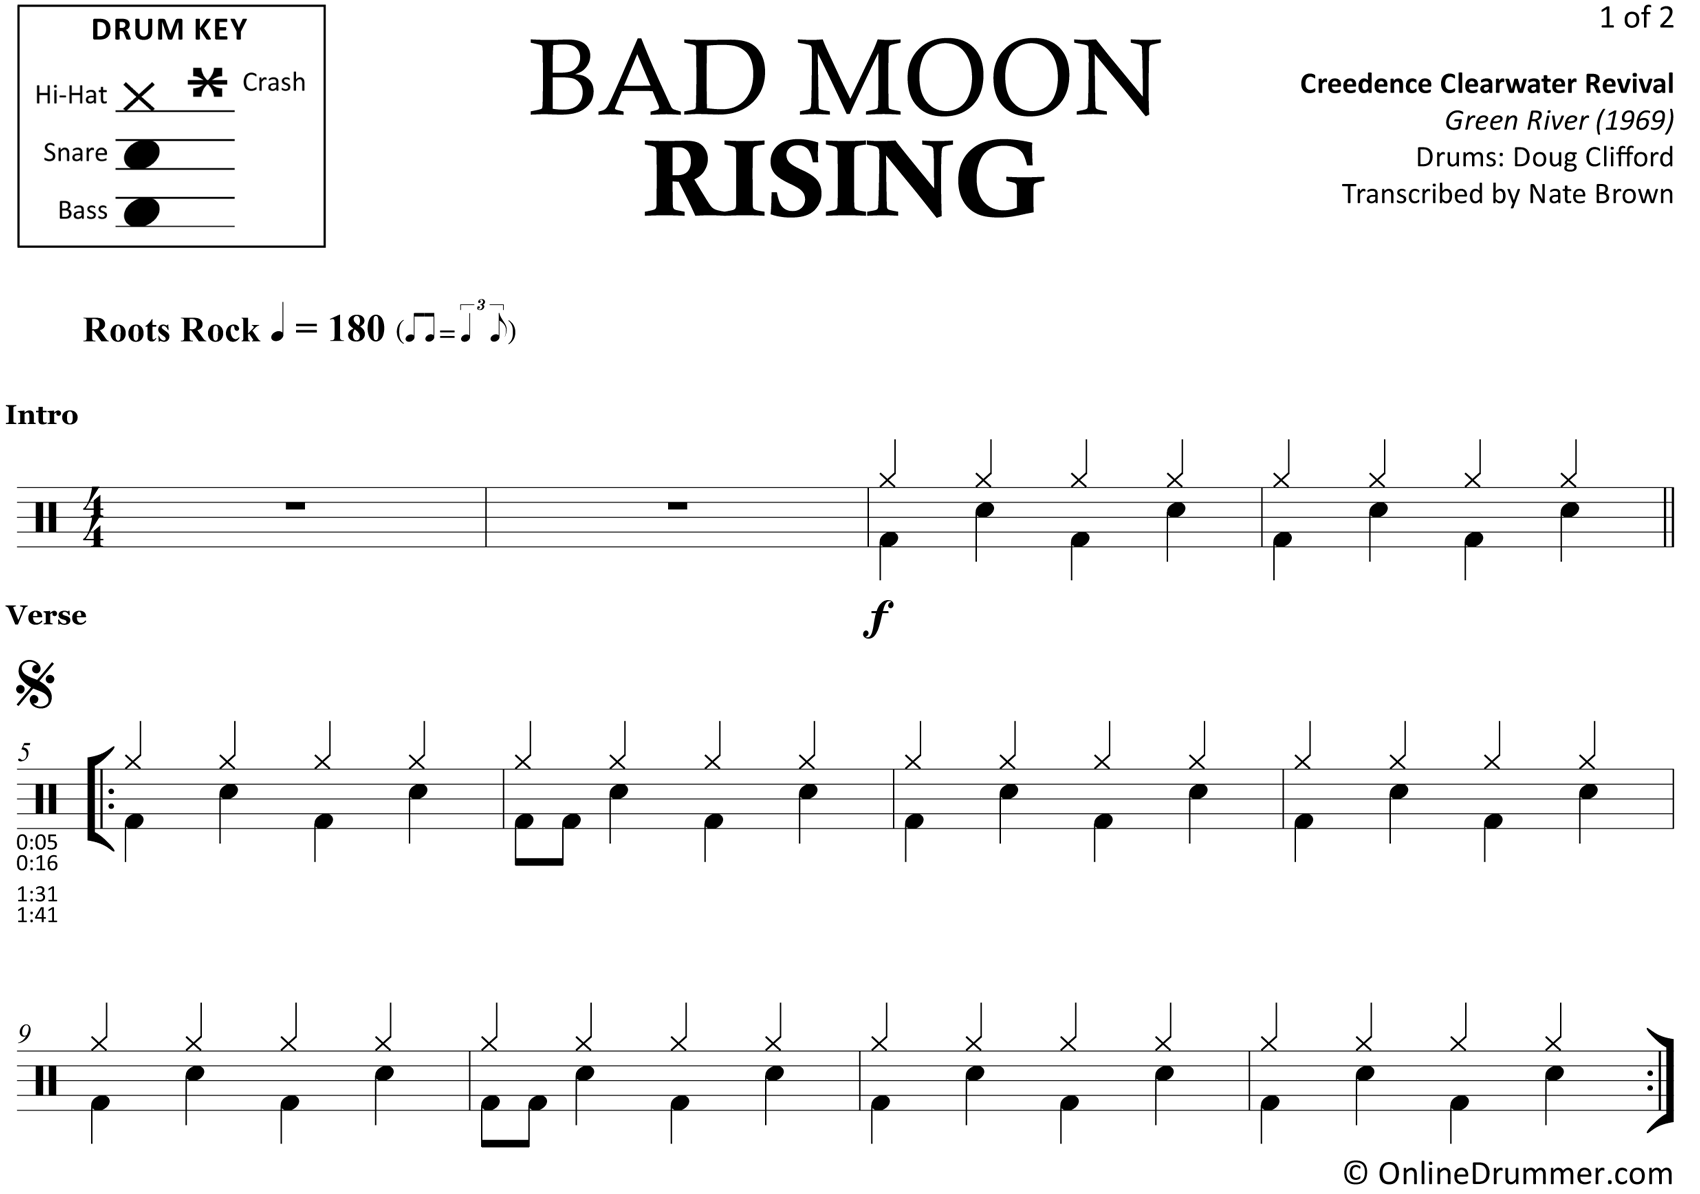 Bad Moon Rising - Creedence Clearwater Revival - Drum Sheet Music